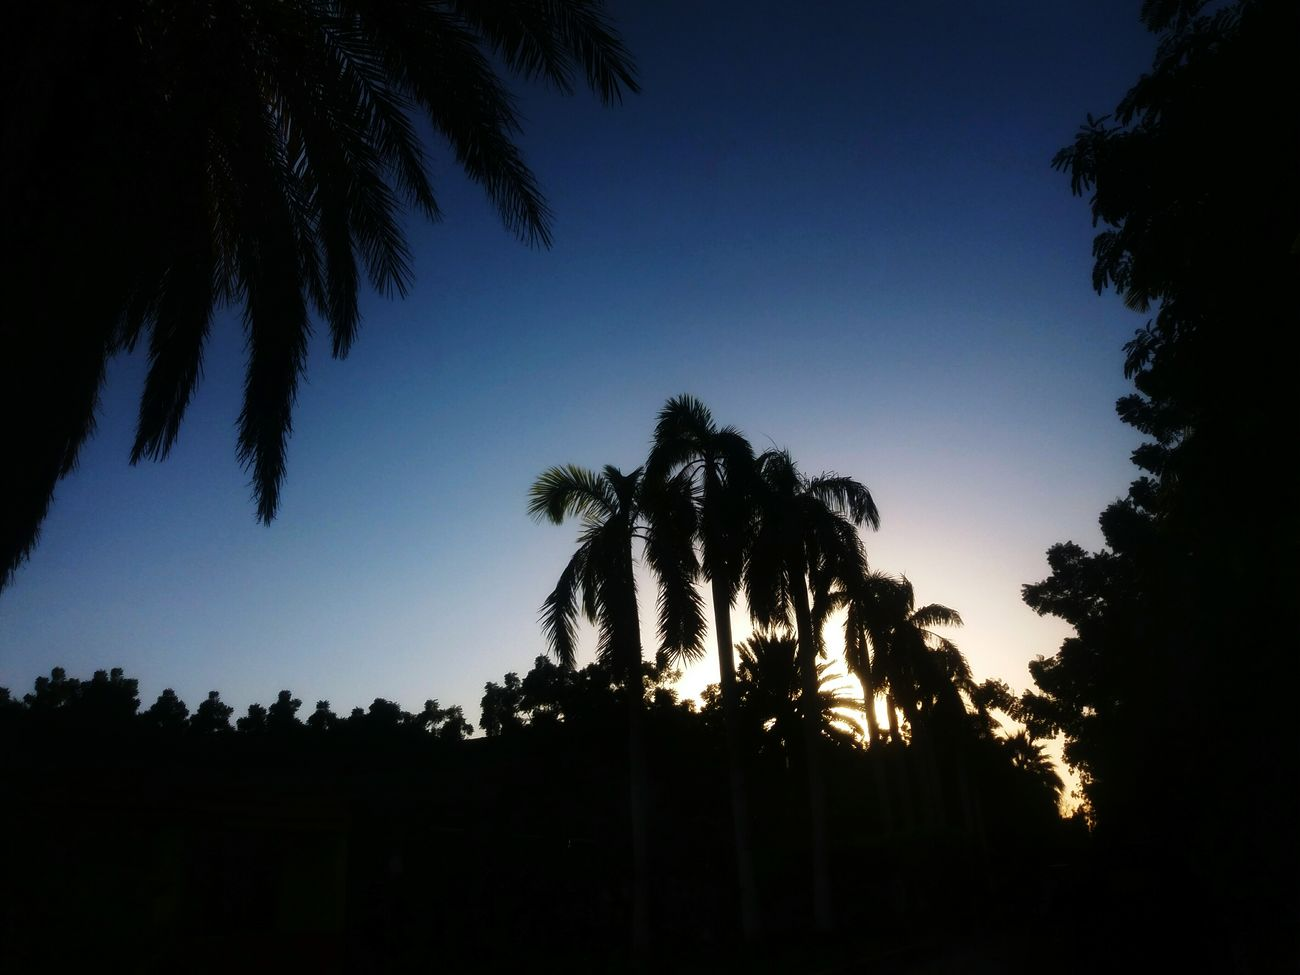 Samsungj5photography📱 PhonePhotography Phoneography Sunset Nature Photography Nature Trees And Sky Trees Palms Palm Trees MyUniversity 🙌❤ Nature_collection Naturephotography Nature_collection Nature Beauty Nature_collection Landscape_collection EyeEmNatureLover EyeEm Nature Collection